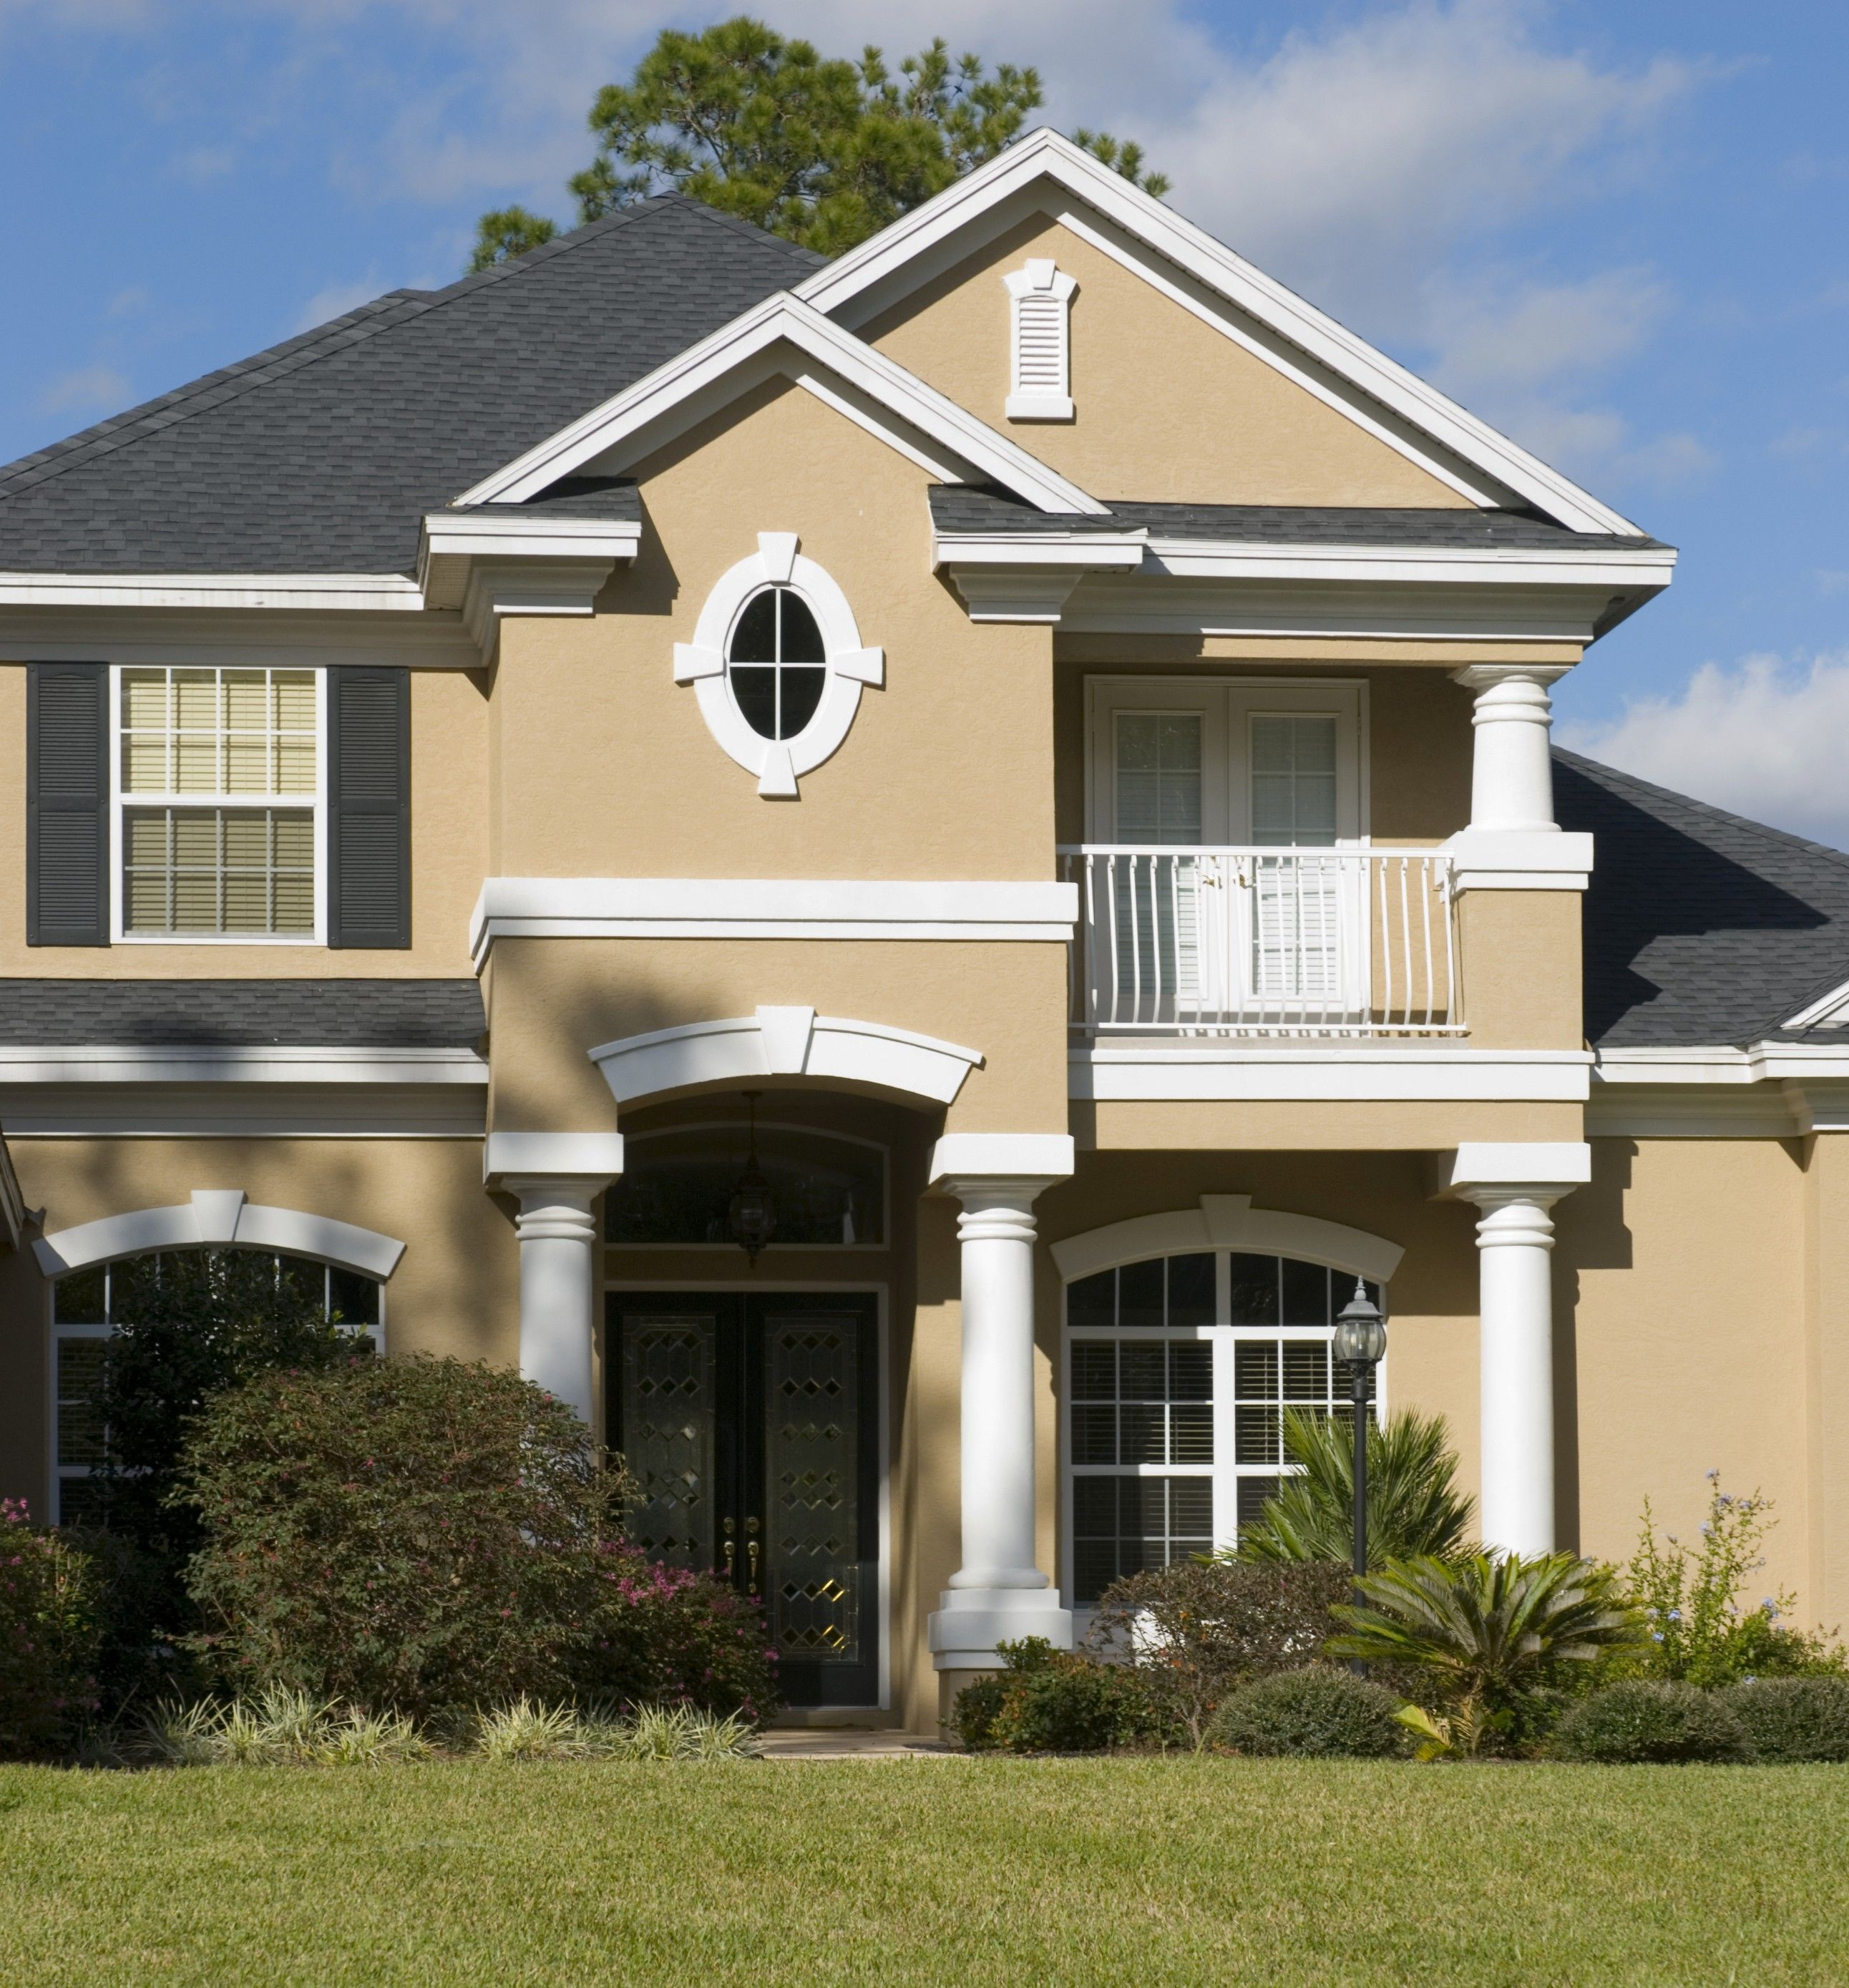 Florida Exterior House Paint Colors Another Picture And Gallery About  housepainting   Interior House Painting Interior House Painters Painting by  Home Painwww exterior house colors   Color Chemistry and house paint  . Exterior Home Color Schemes Florida. Home Design Ideas